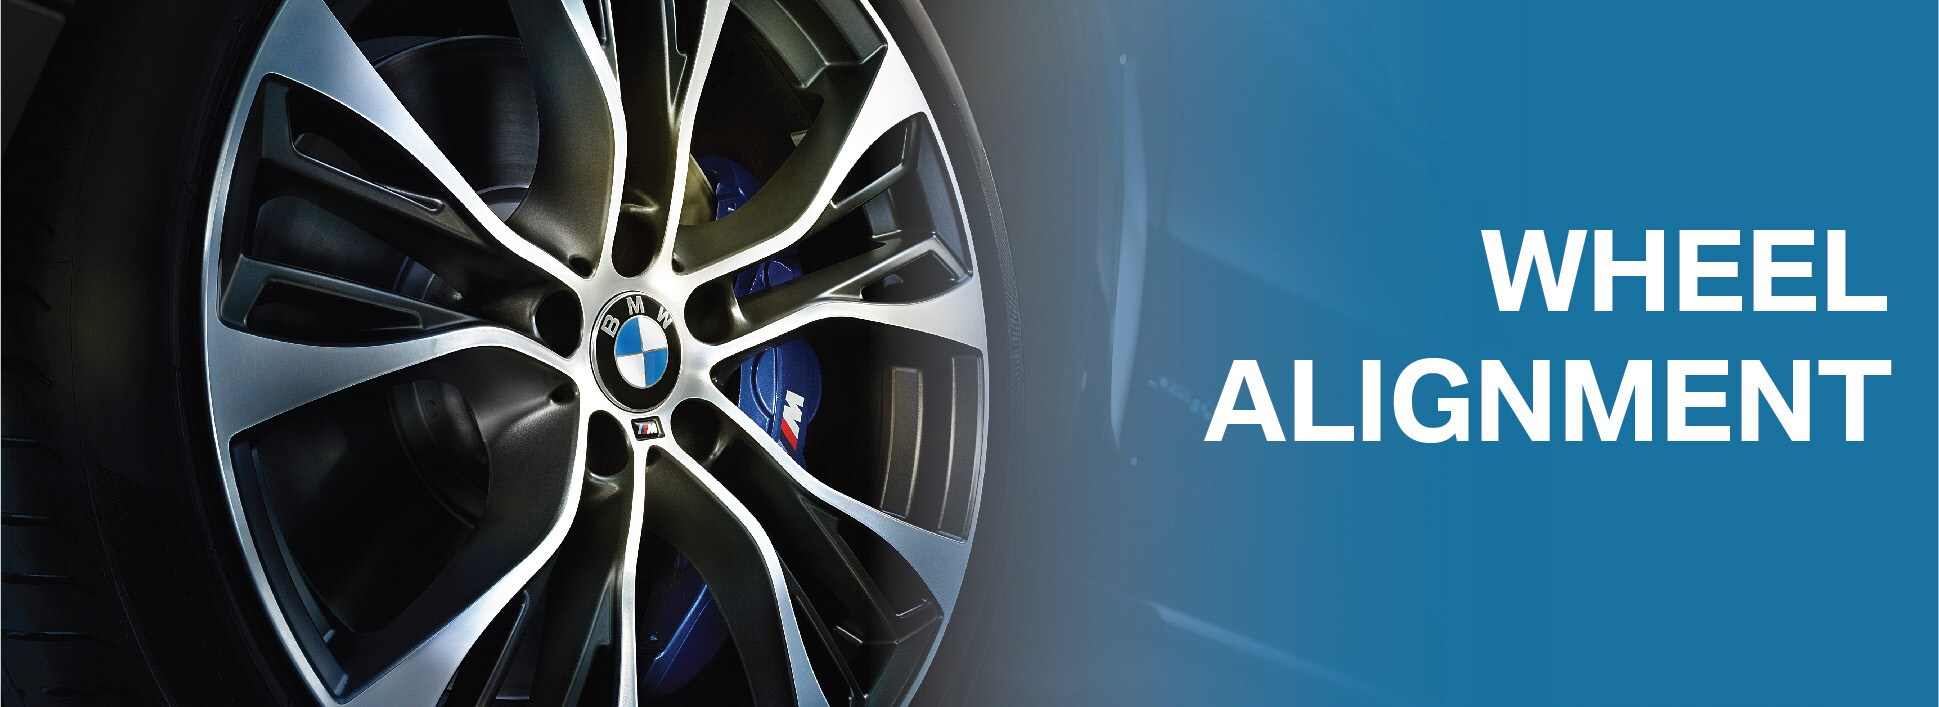 d0e0c2d8d3e BMW ALIGNMENT in Lake Bluff IL | Karl Knauz BMW